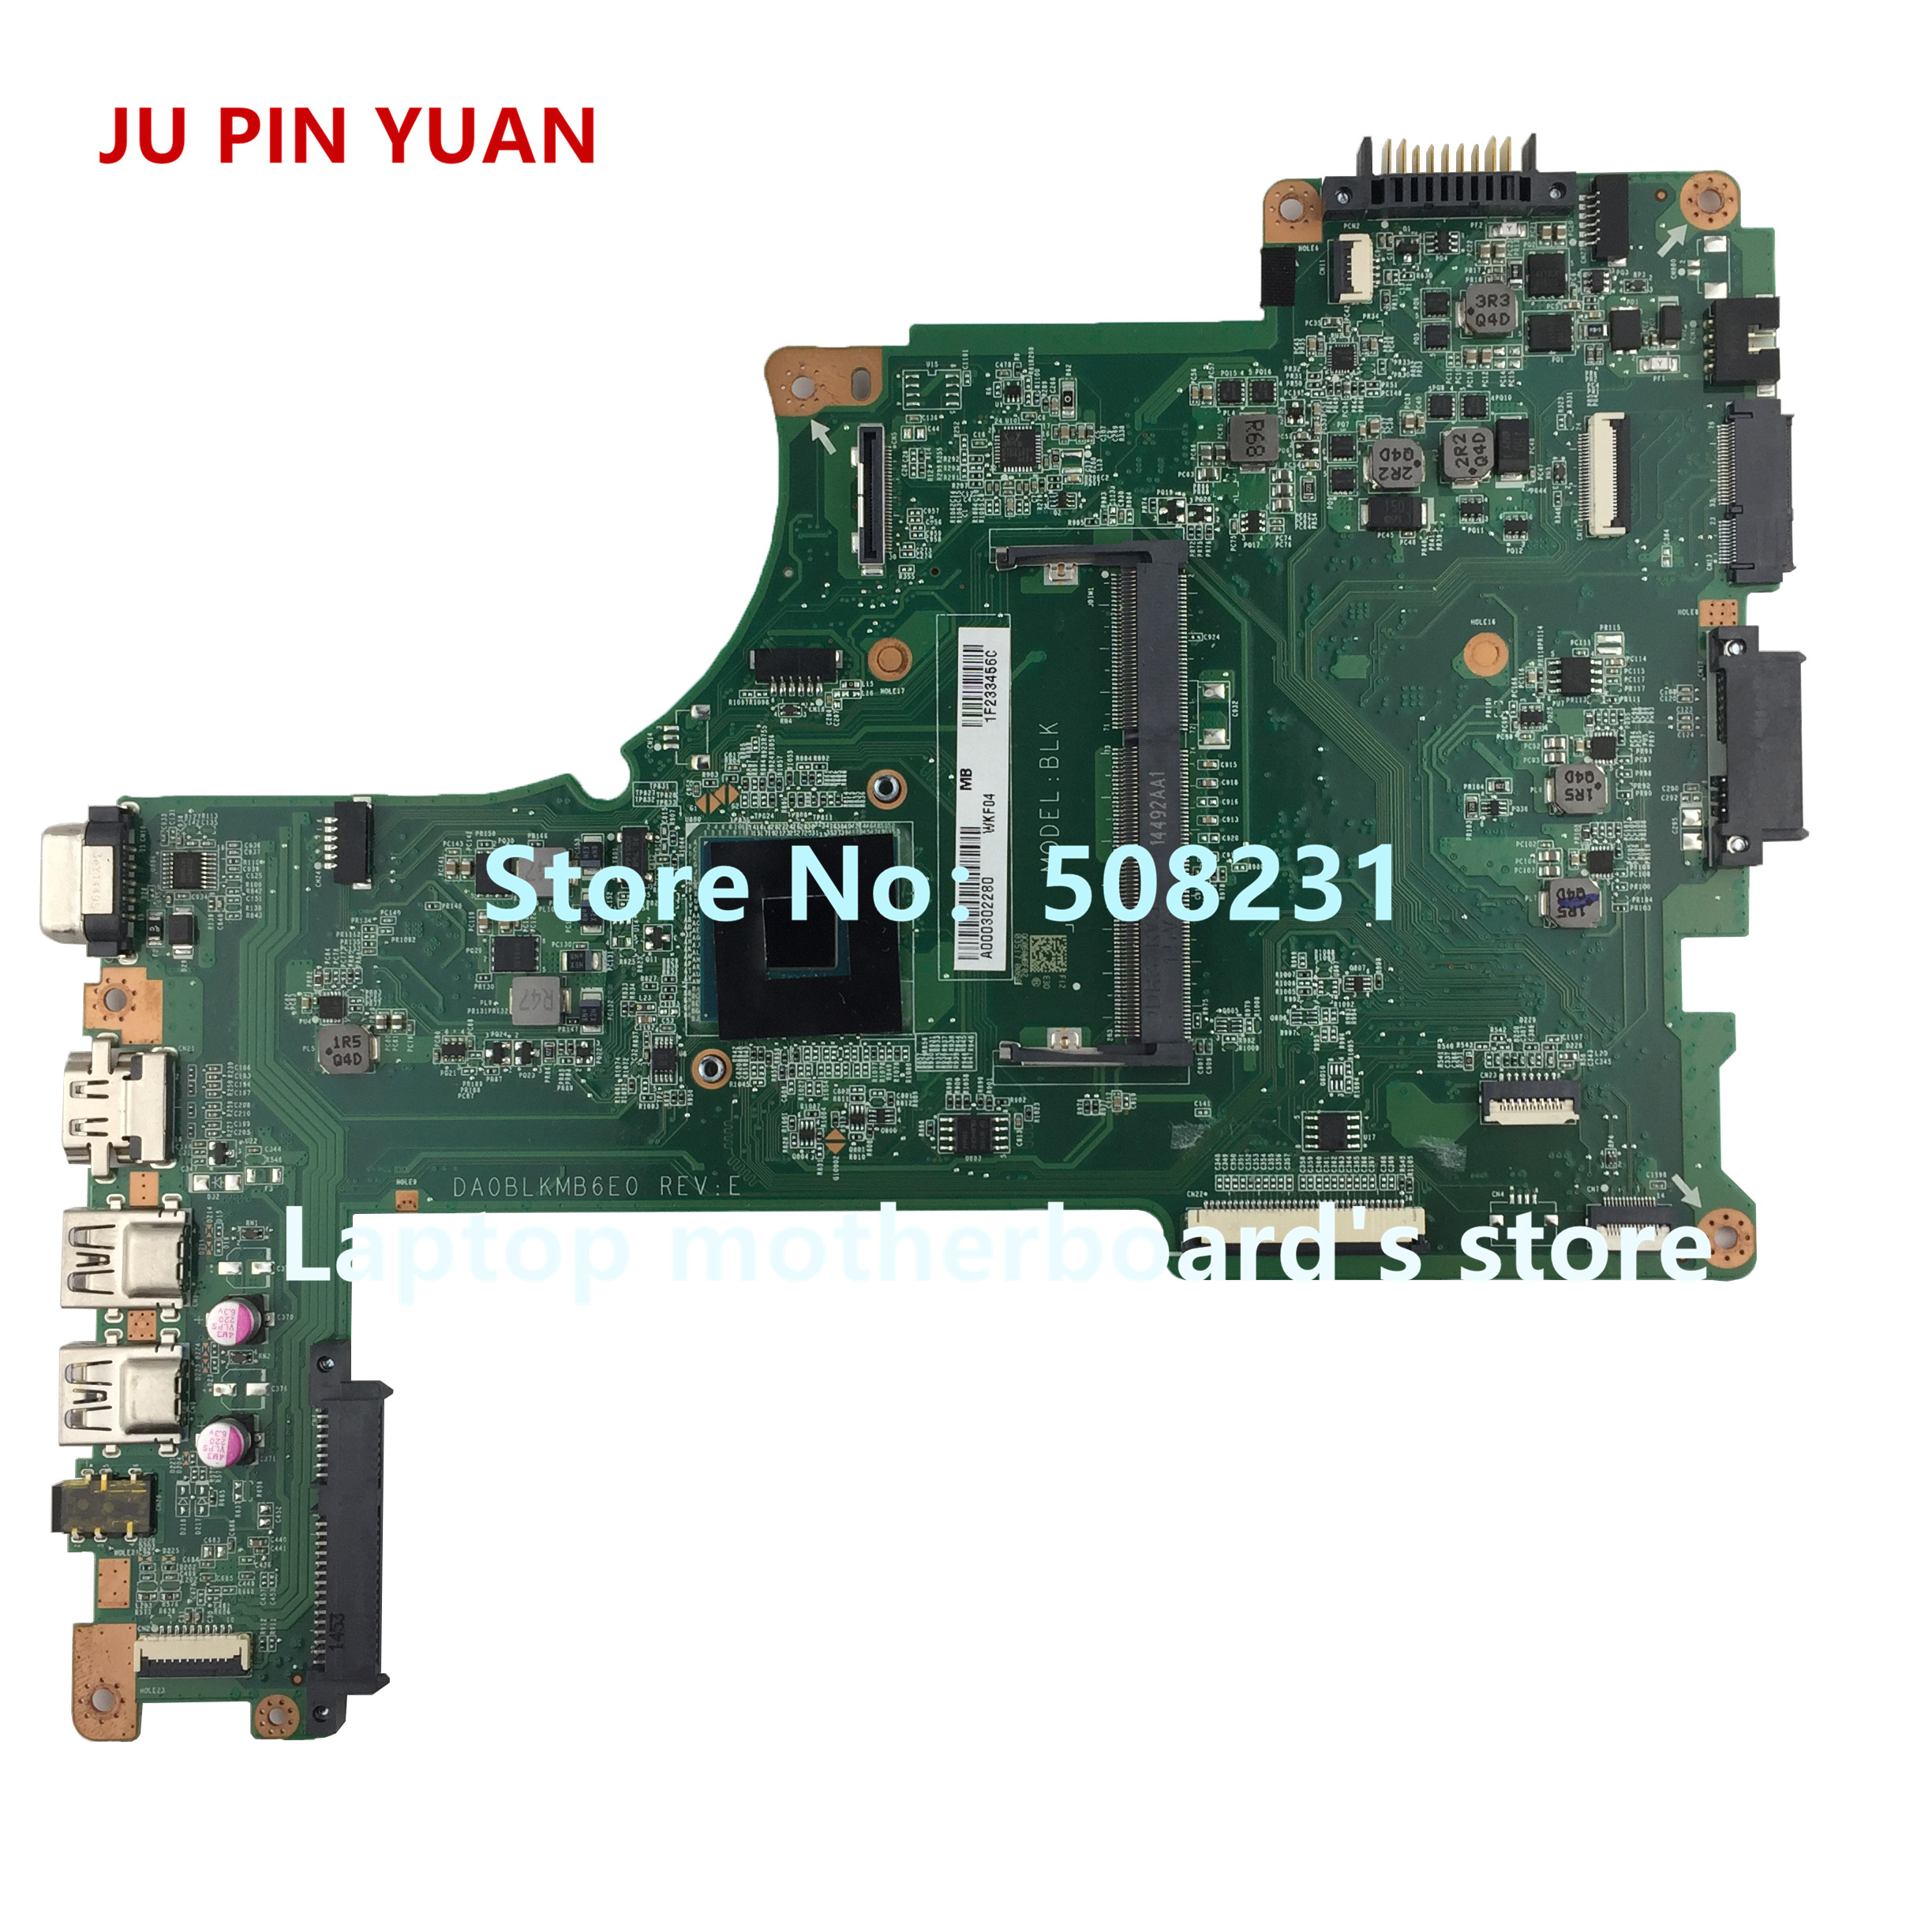 JU PIN YUAN A000302280 DA0BLKMB6E0 mainboard For Toshiba Satellite L50 L50 B L55 L55 B laptop